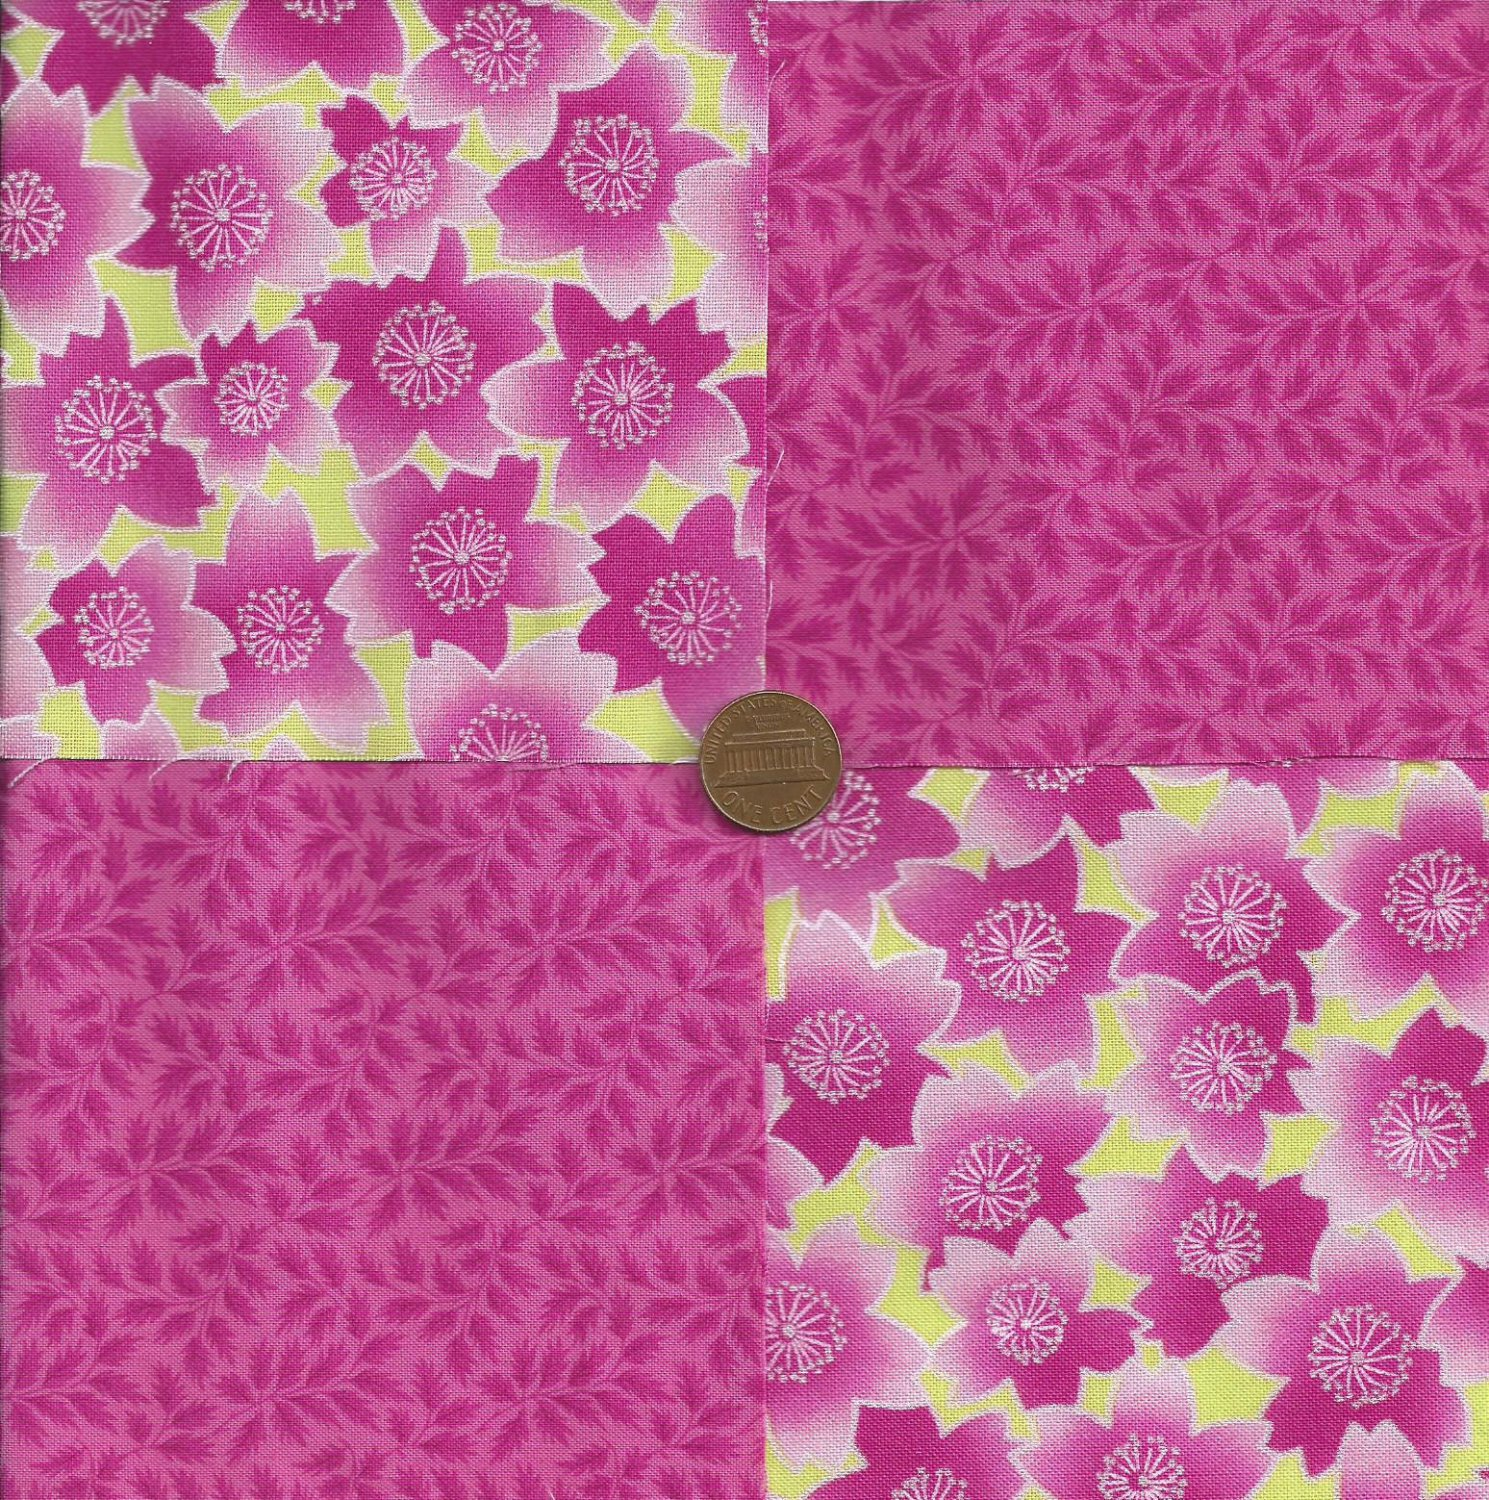 Hot Pink Floral Leaves 4 inch Fabric Quilt Squares  Block ms1